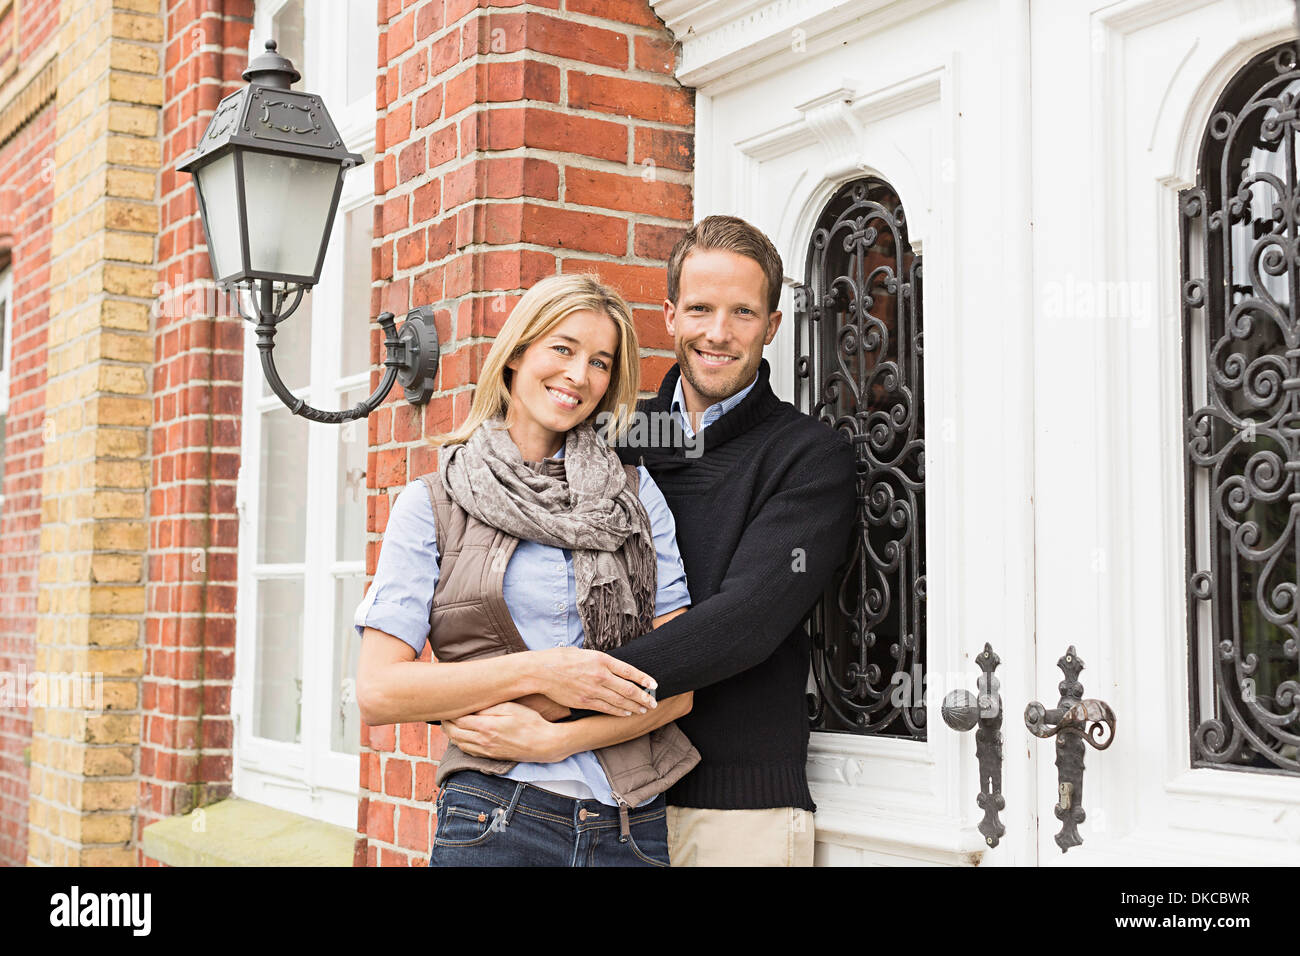 Mid adult couple outside house - Stock Image